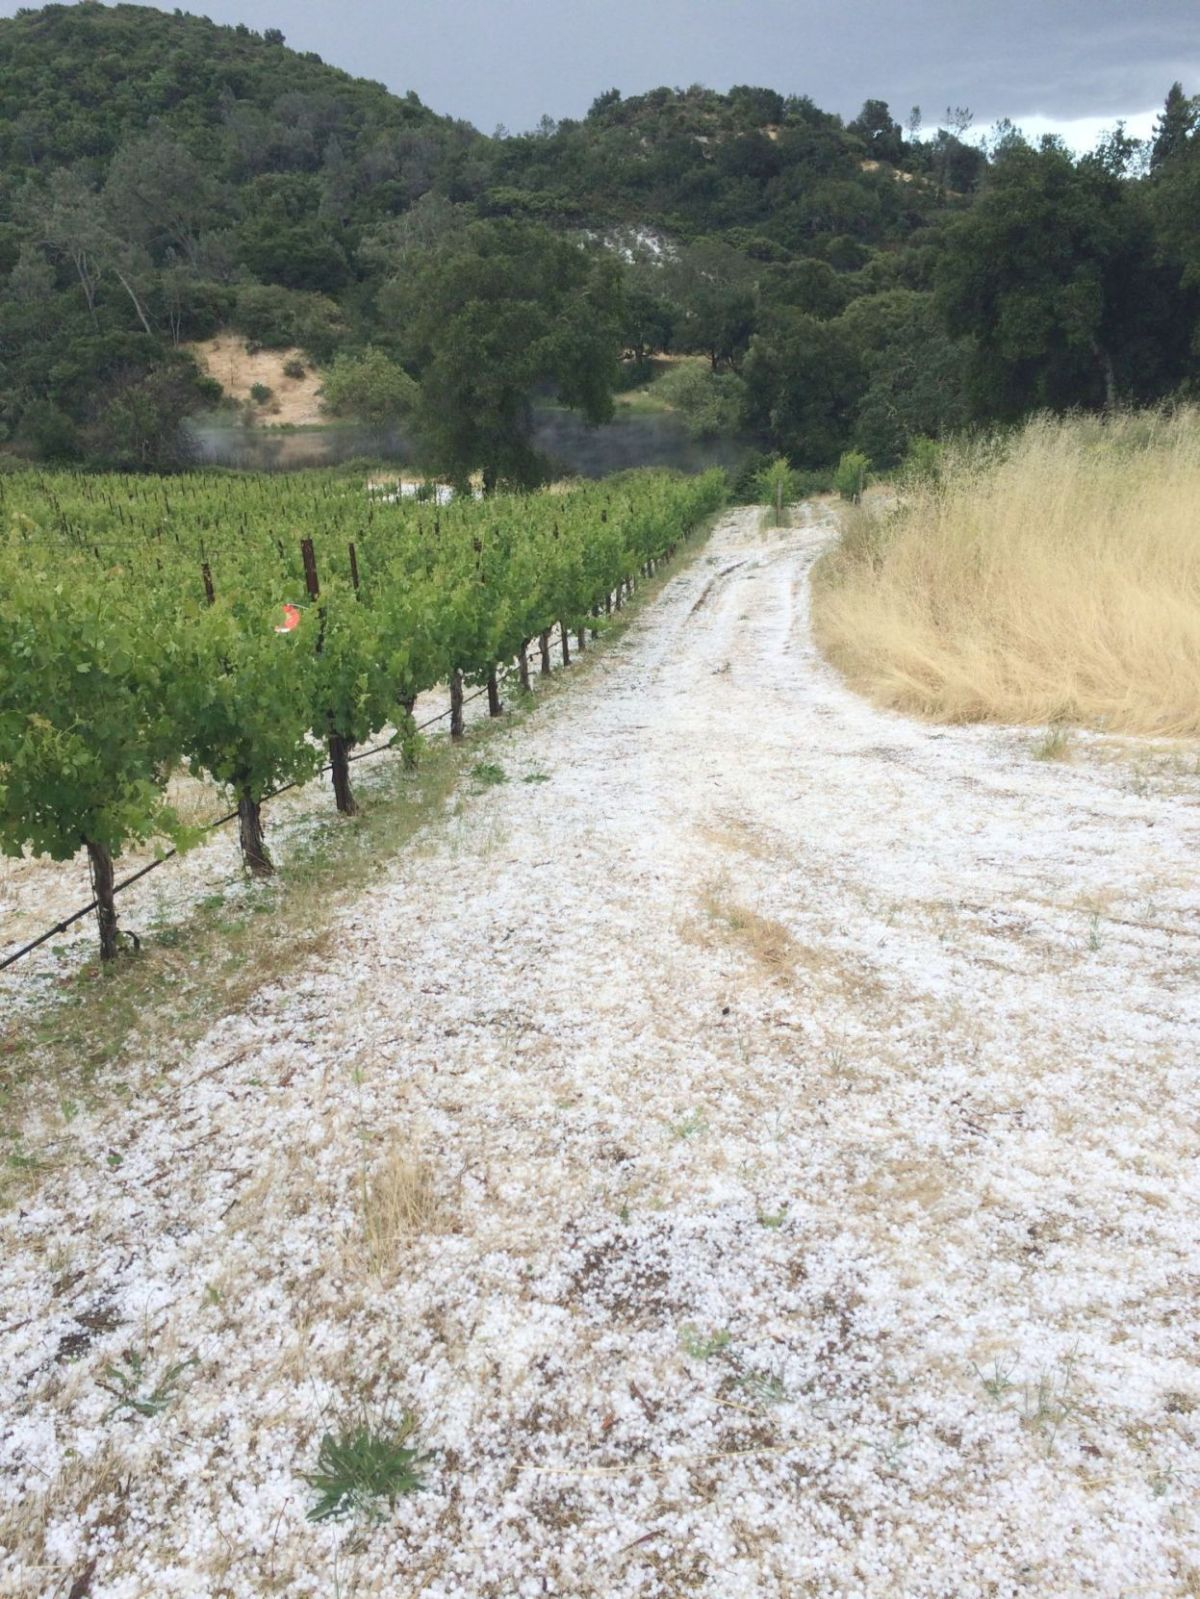 Freak hail storm causes vine damage in some Napa Valley ...